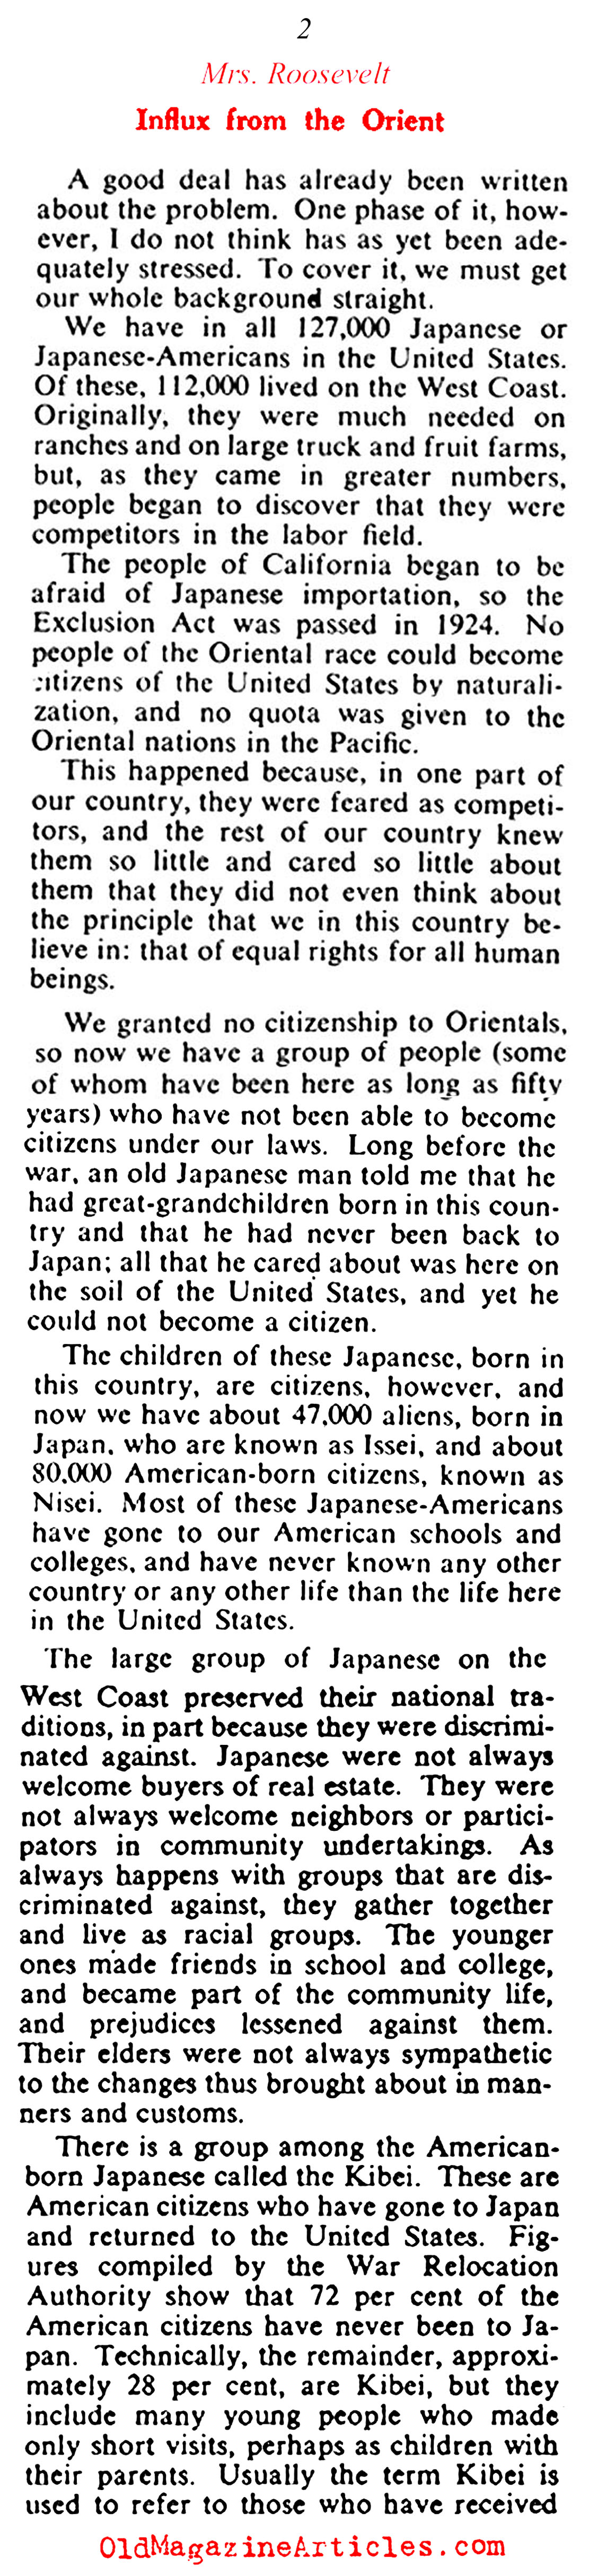 Eleanor Roosevelt on Japanese-American Internment (Collier's, 1943)